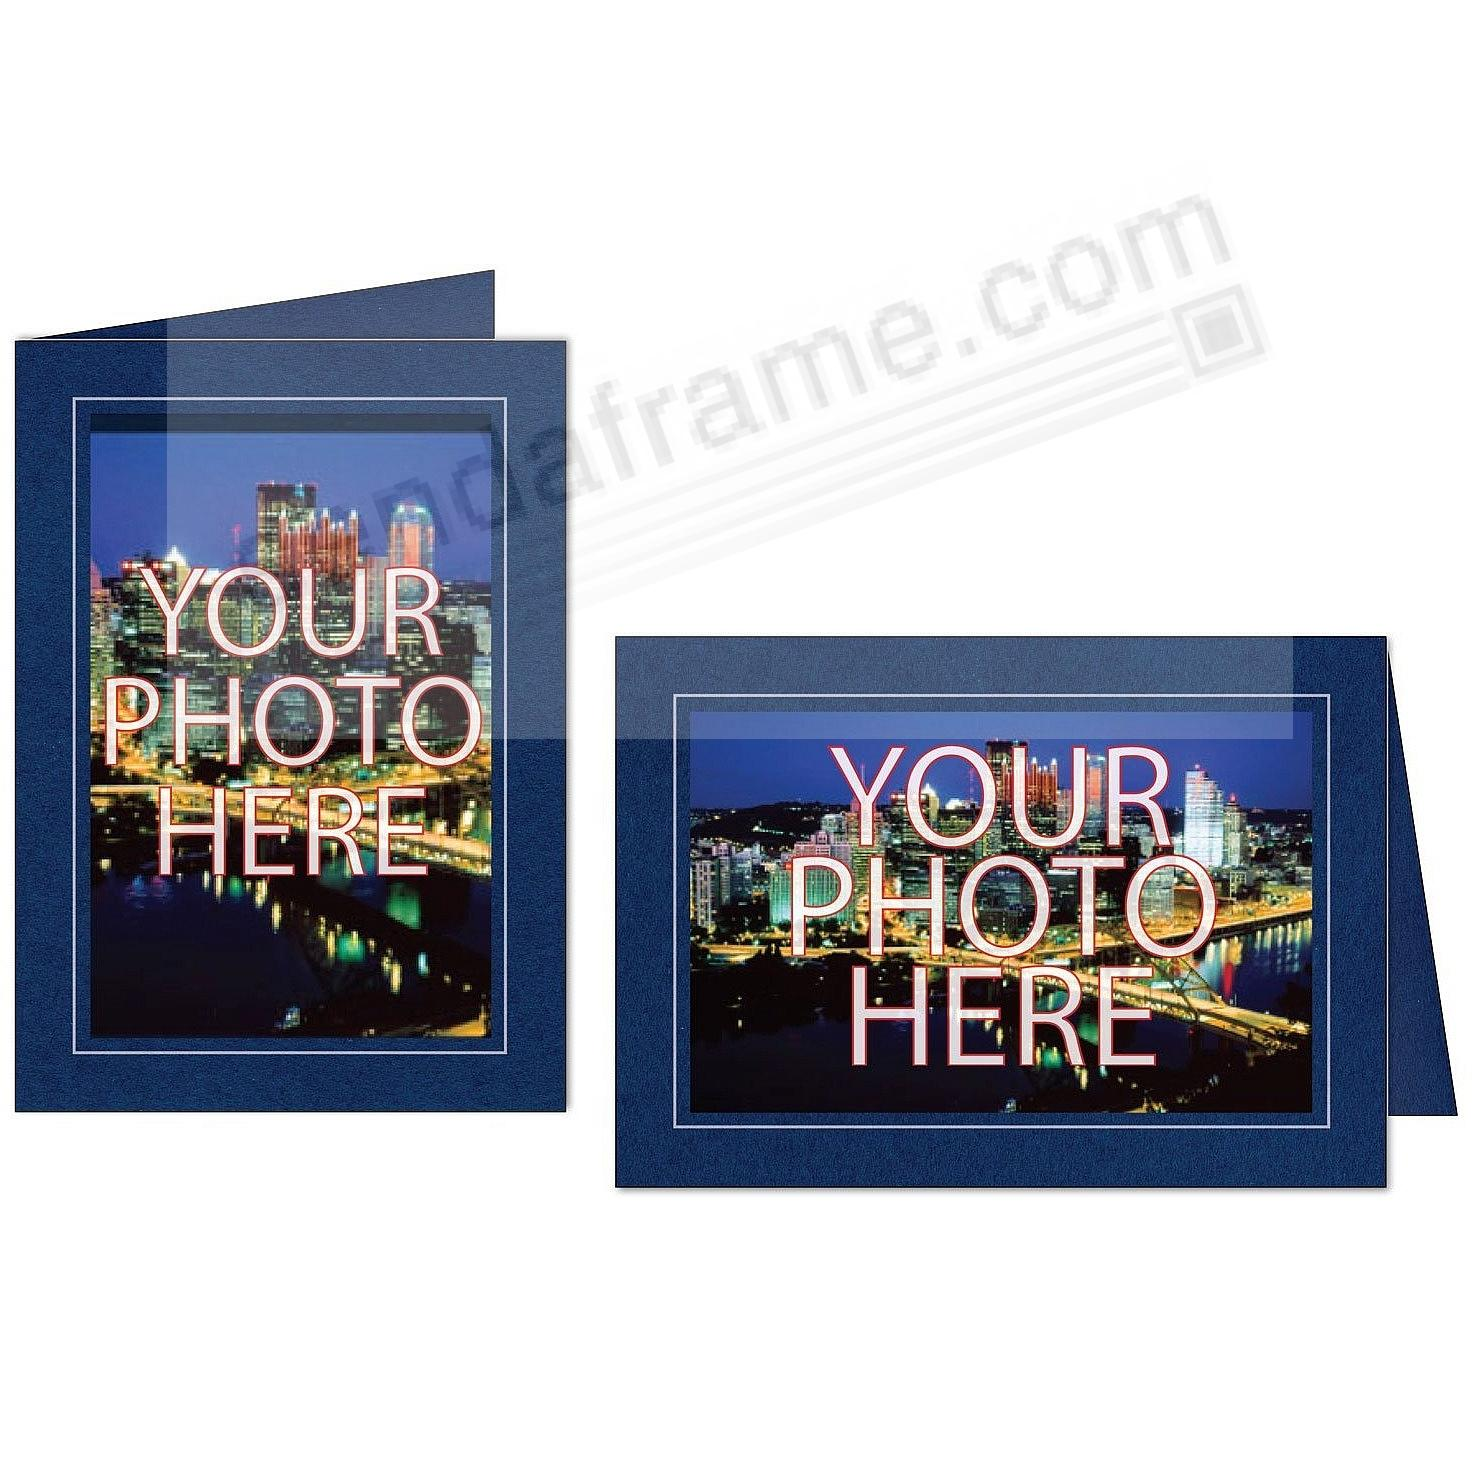 navyblue wsilver trim border photo insert card sold in